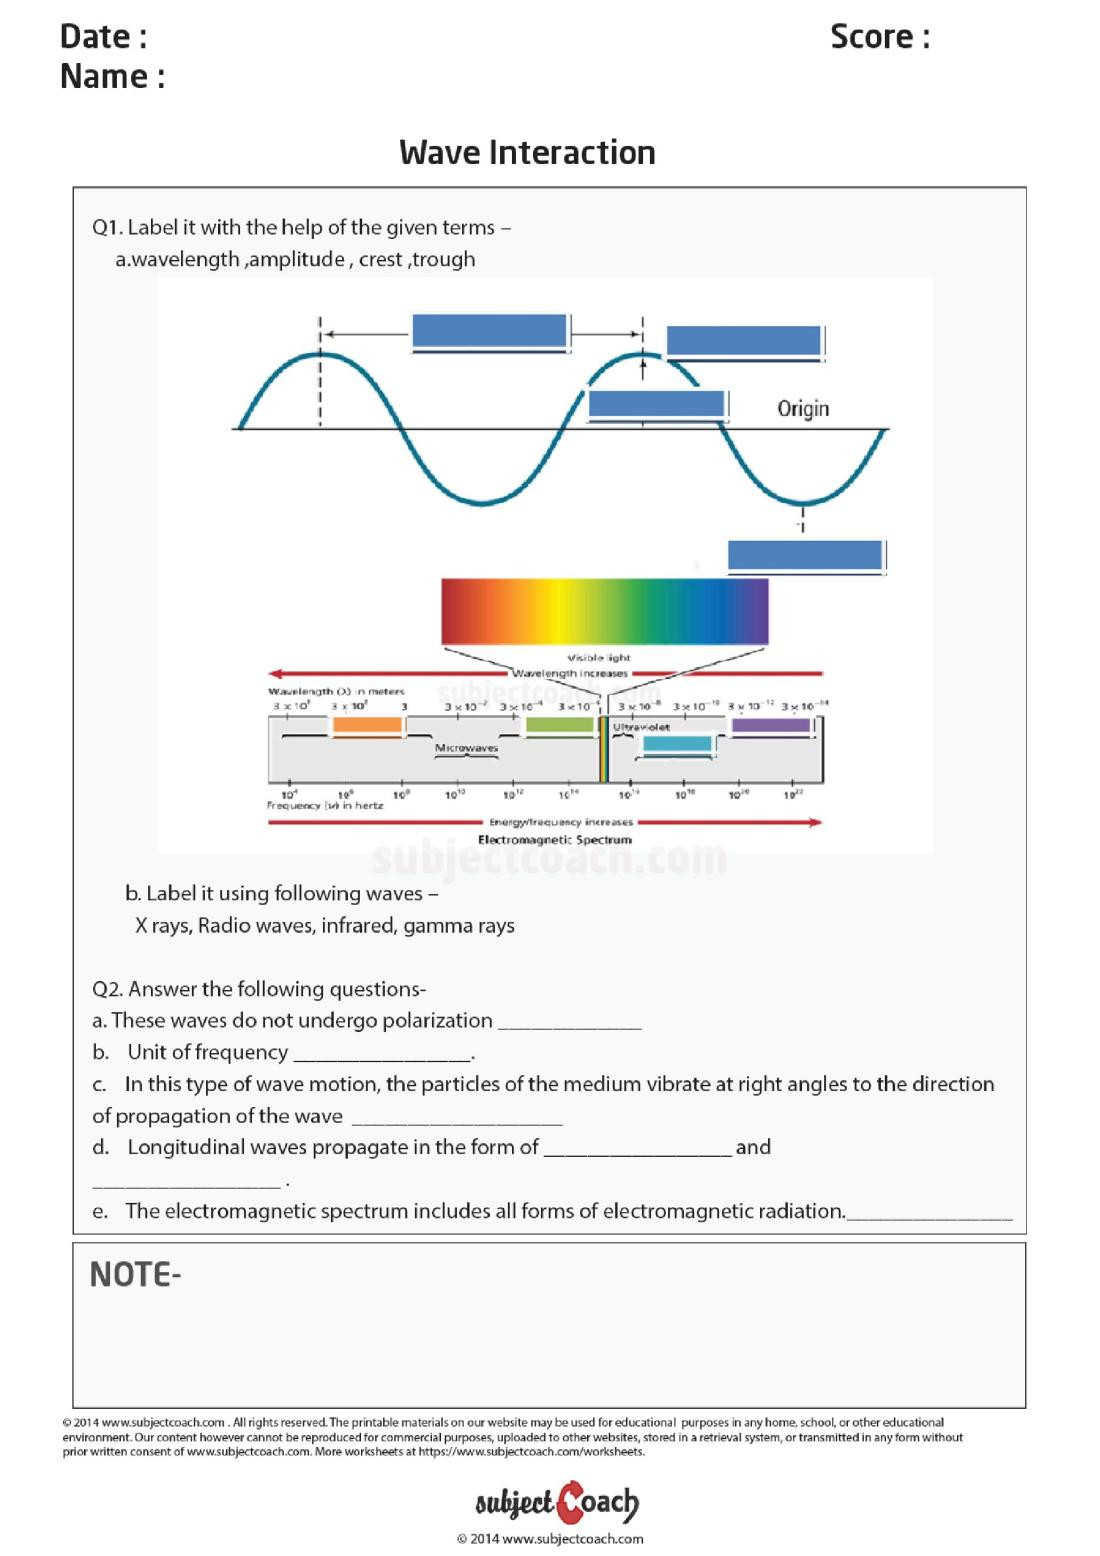 Science Worksheets for 7th Grade Do Science Worksheets Work for 7th Graders – Naplan Blogs